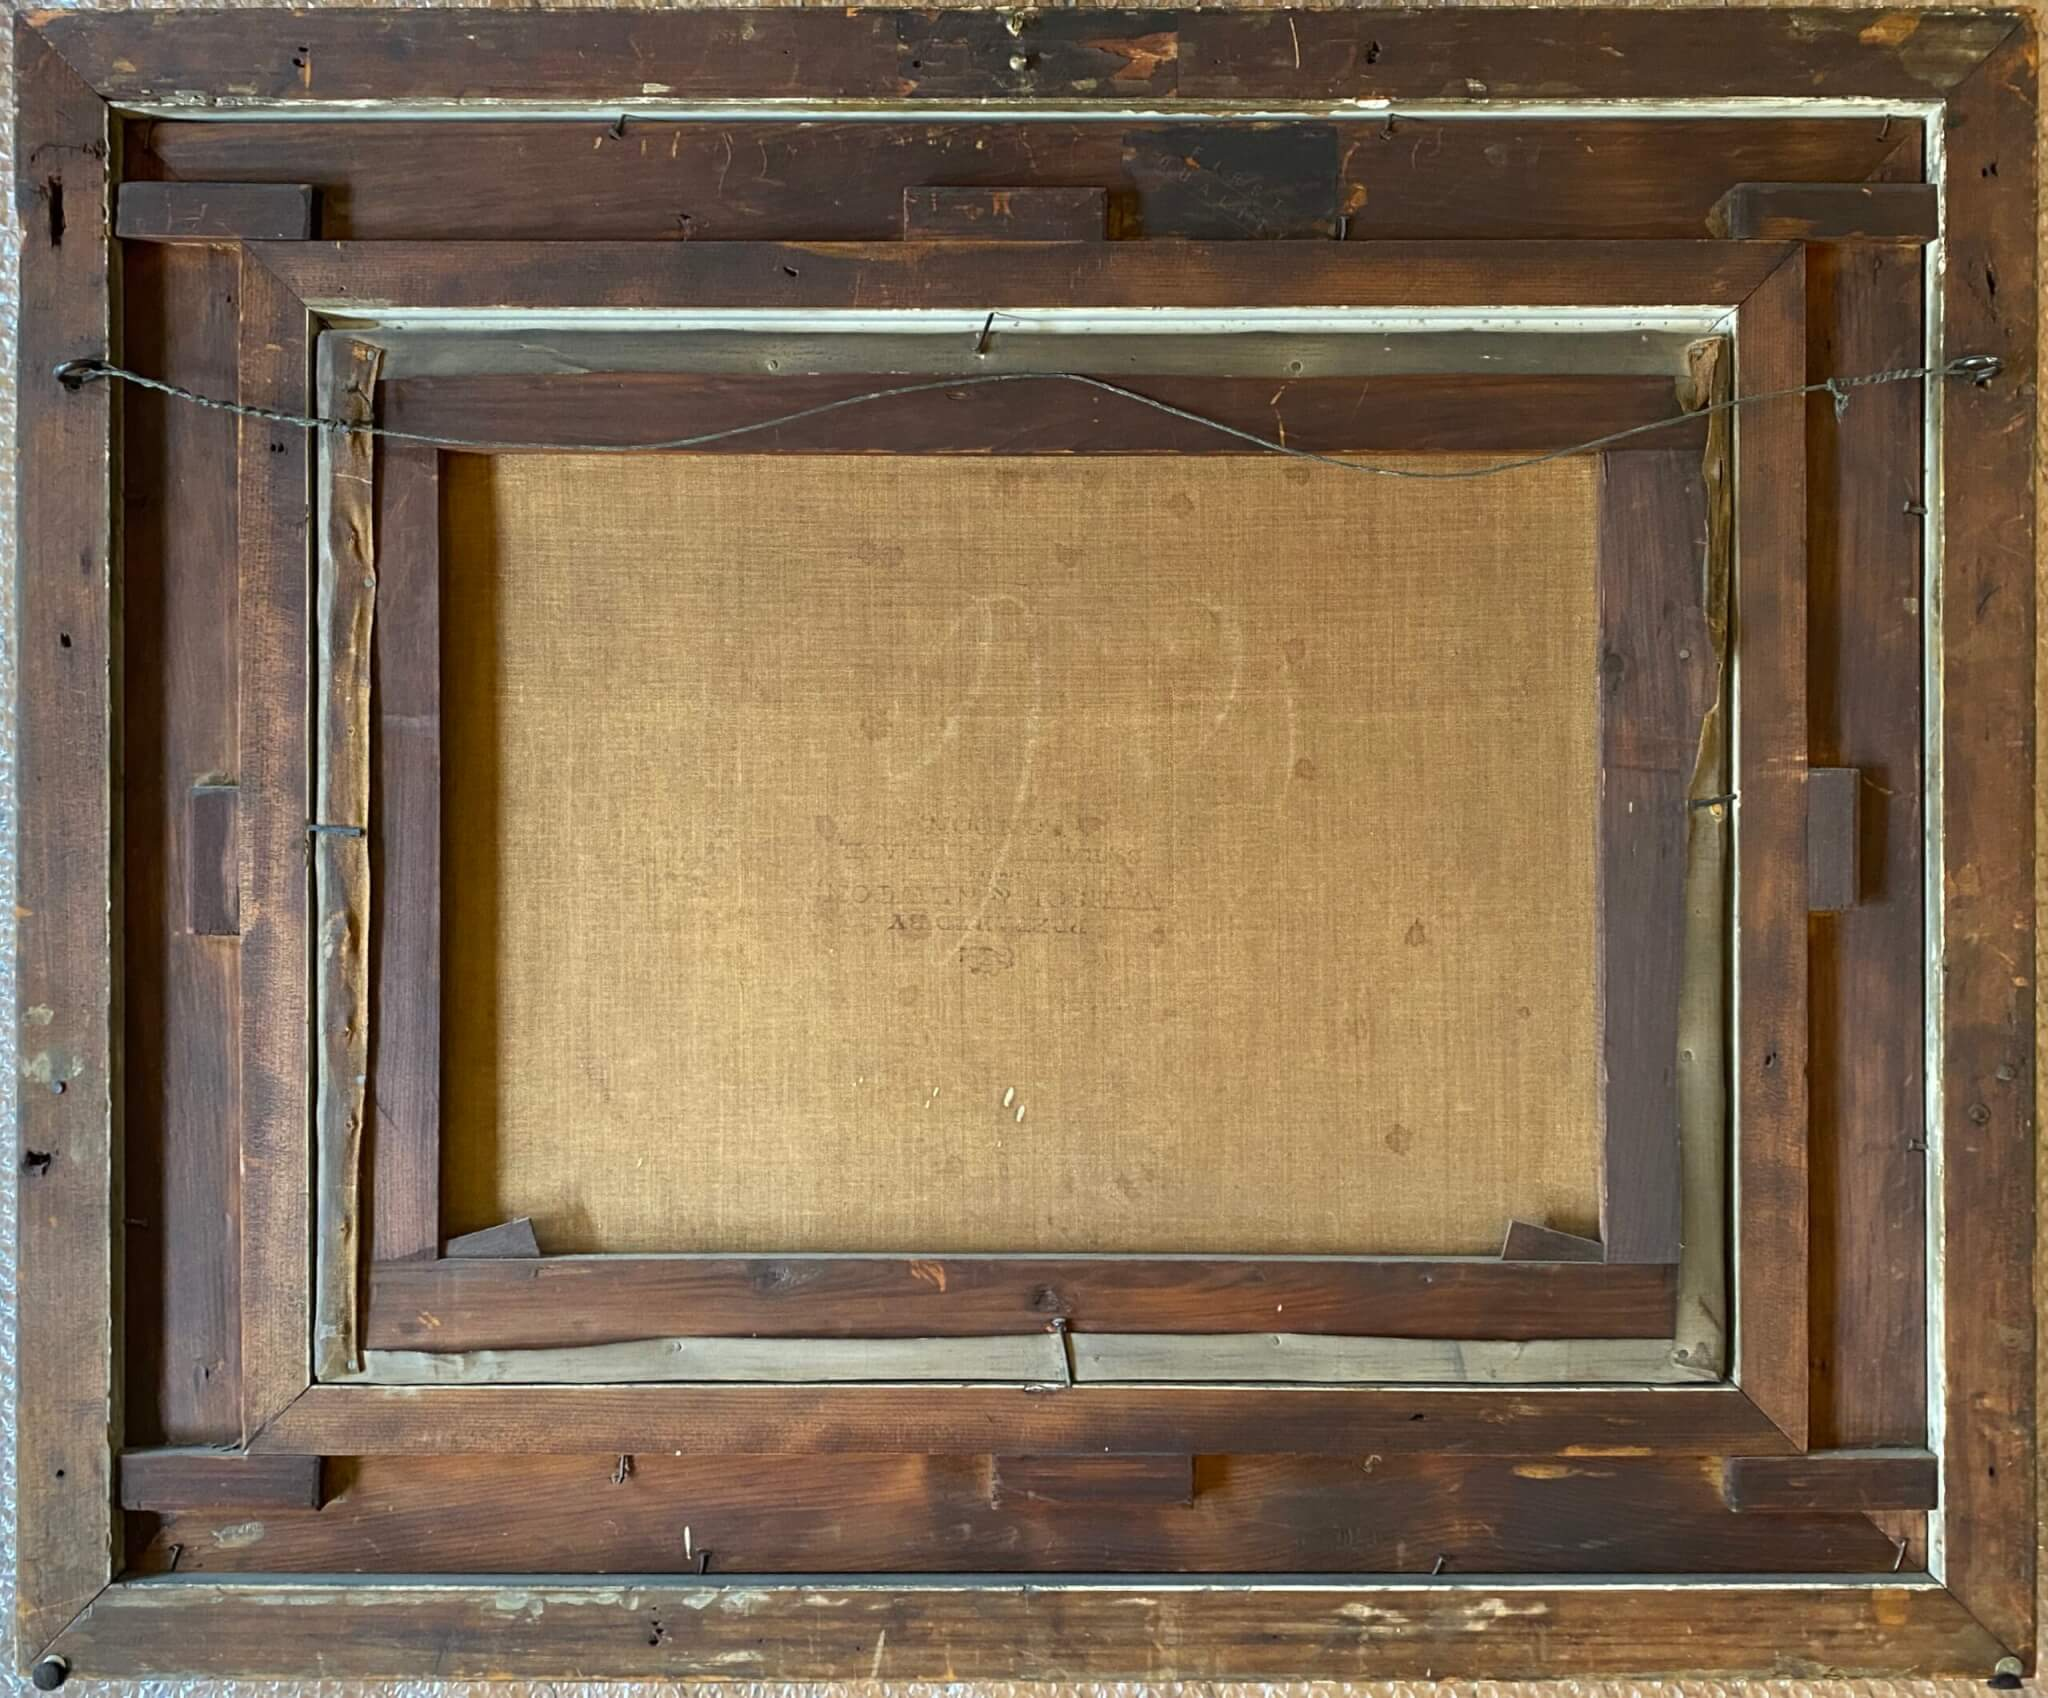 antique frame repair. Antique frame restoration. frame cleaning in Chicago